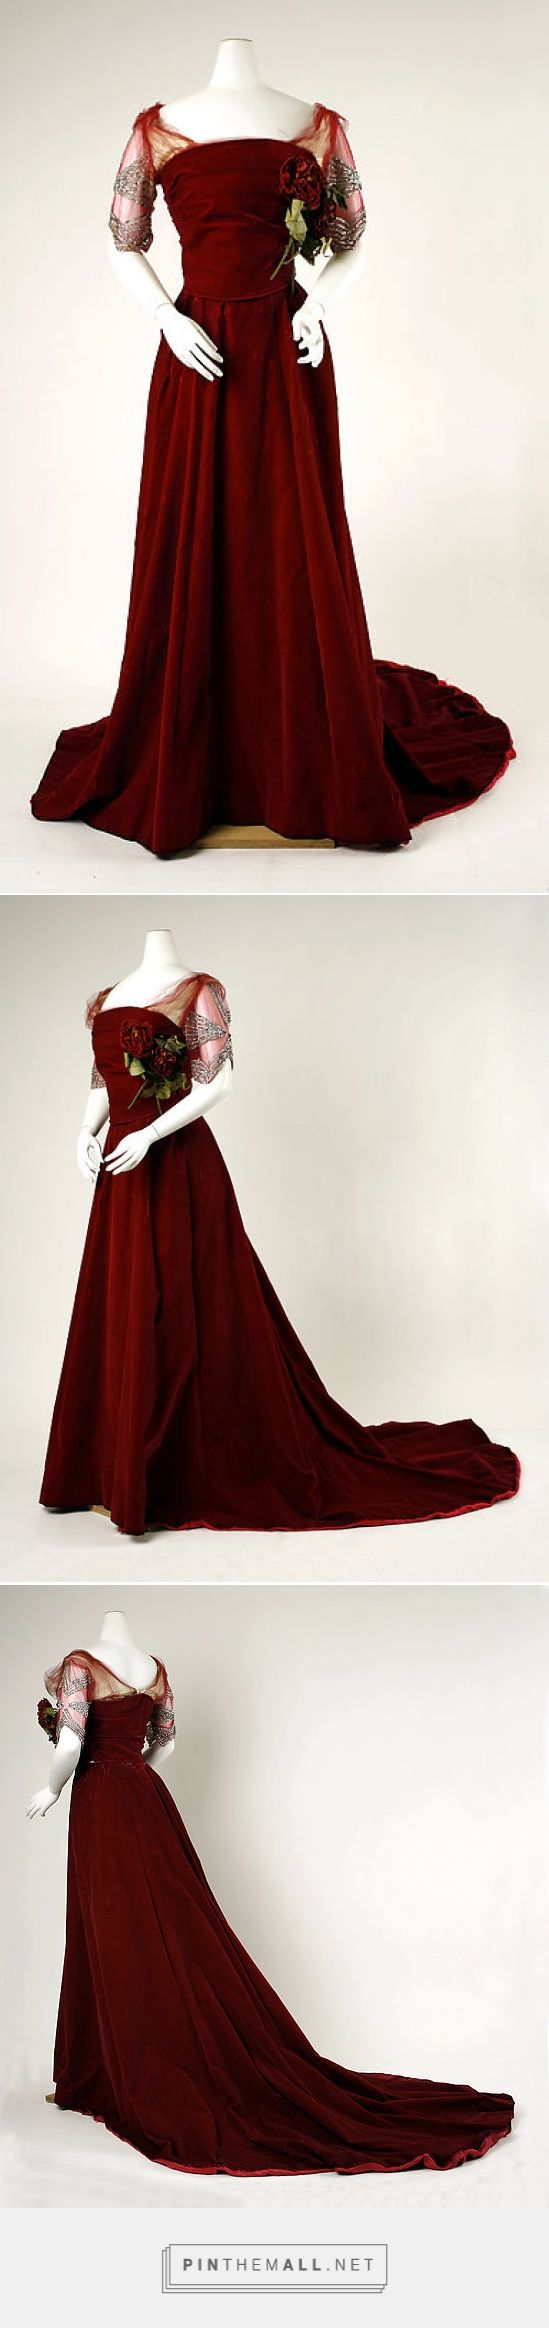 Evening dress by House of Worth 1898-1900 French | The Metropolitan Museum of Art